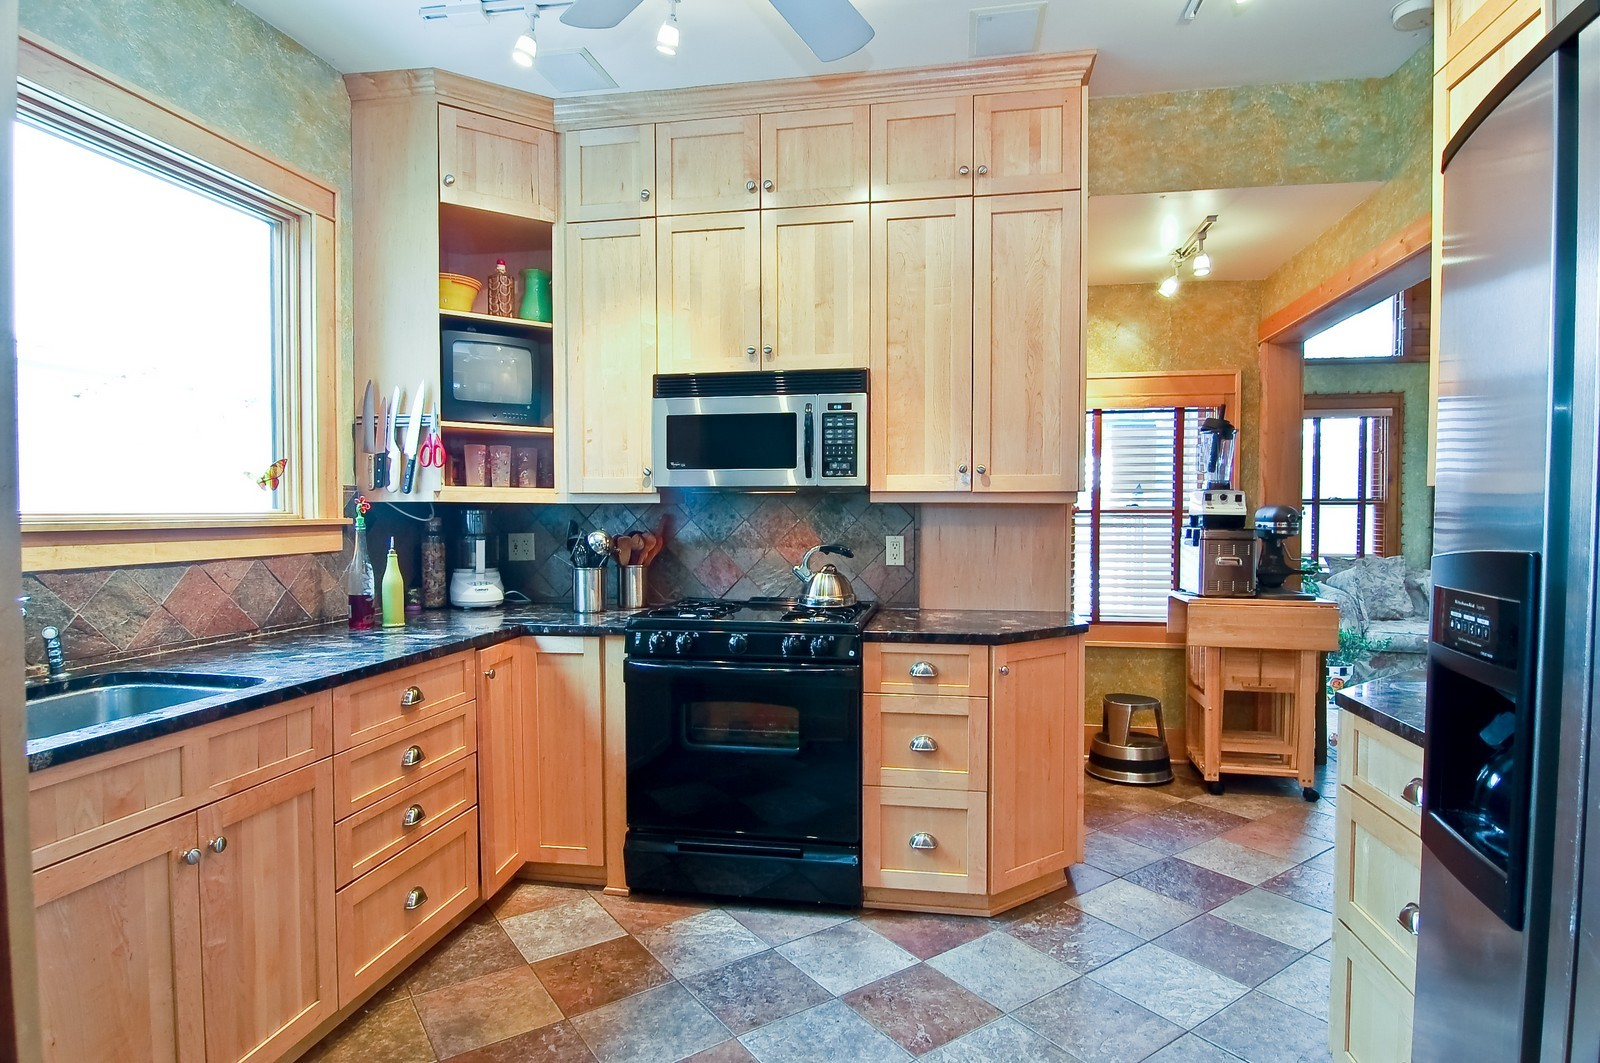 Real Estate Photography - 5012 Upton Avenue South, Minneapolis, MN, 55410 - Kitchen